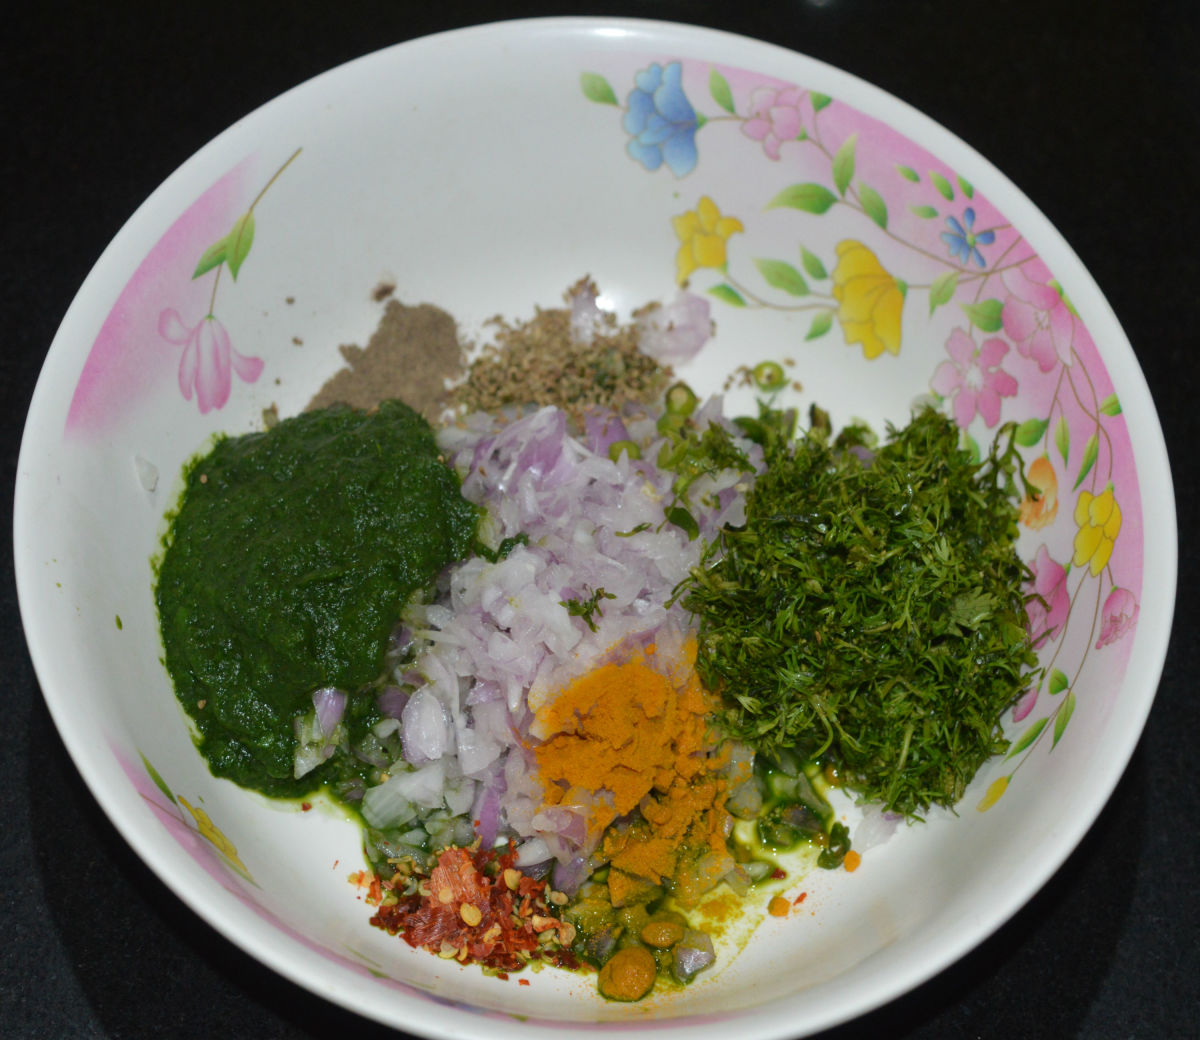 Step two: Add the green paste to a large mixing bowl. Add chopped onions, grated ginger, chopped coriander leaves, green chilies, chili flakes, carom seeds, pepper powder, turmeric powder, jowar flour, and salt.